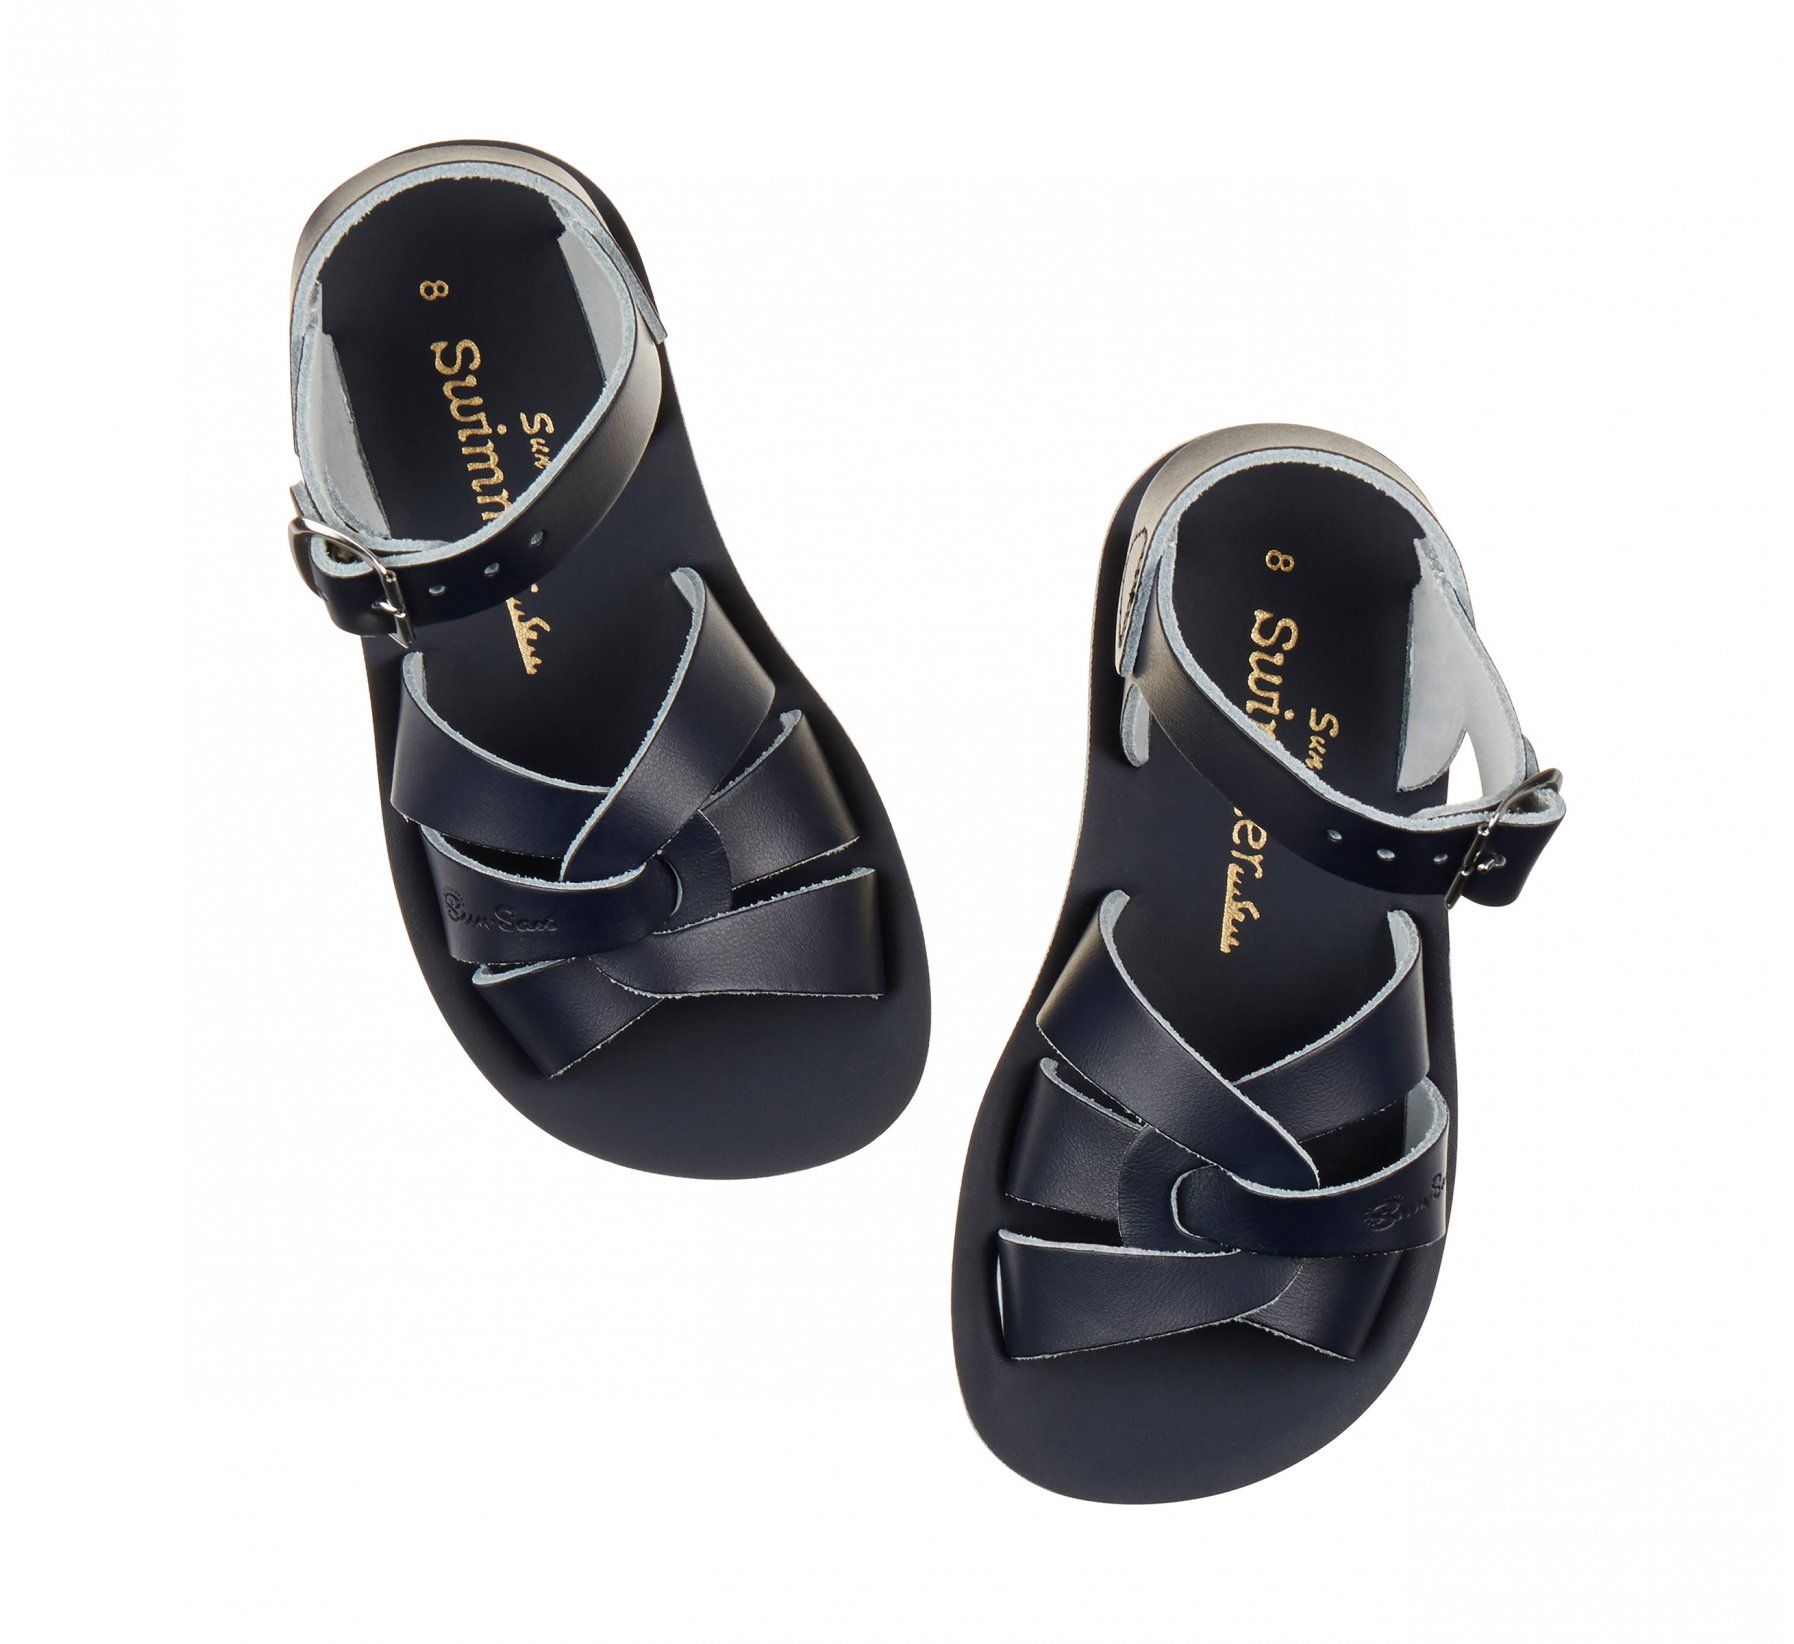 Swimmer Bleu Marine - Salt Water Sandals